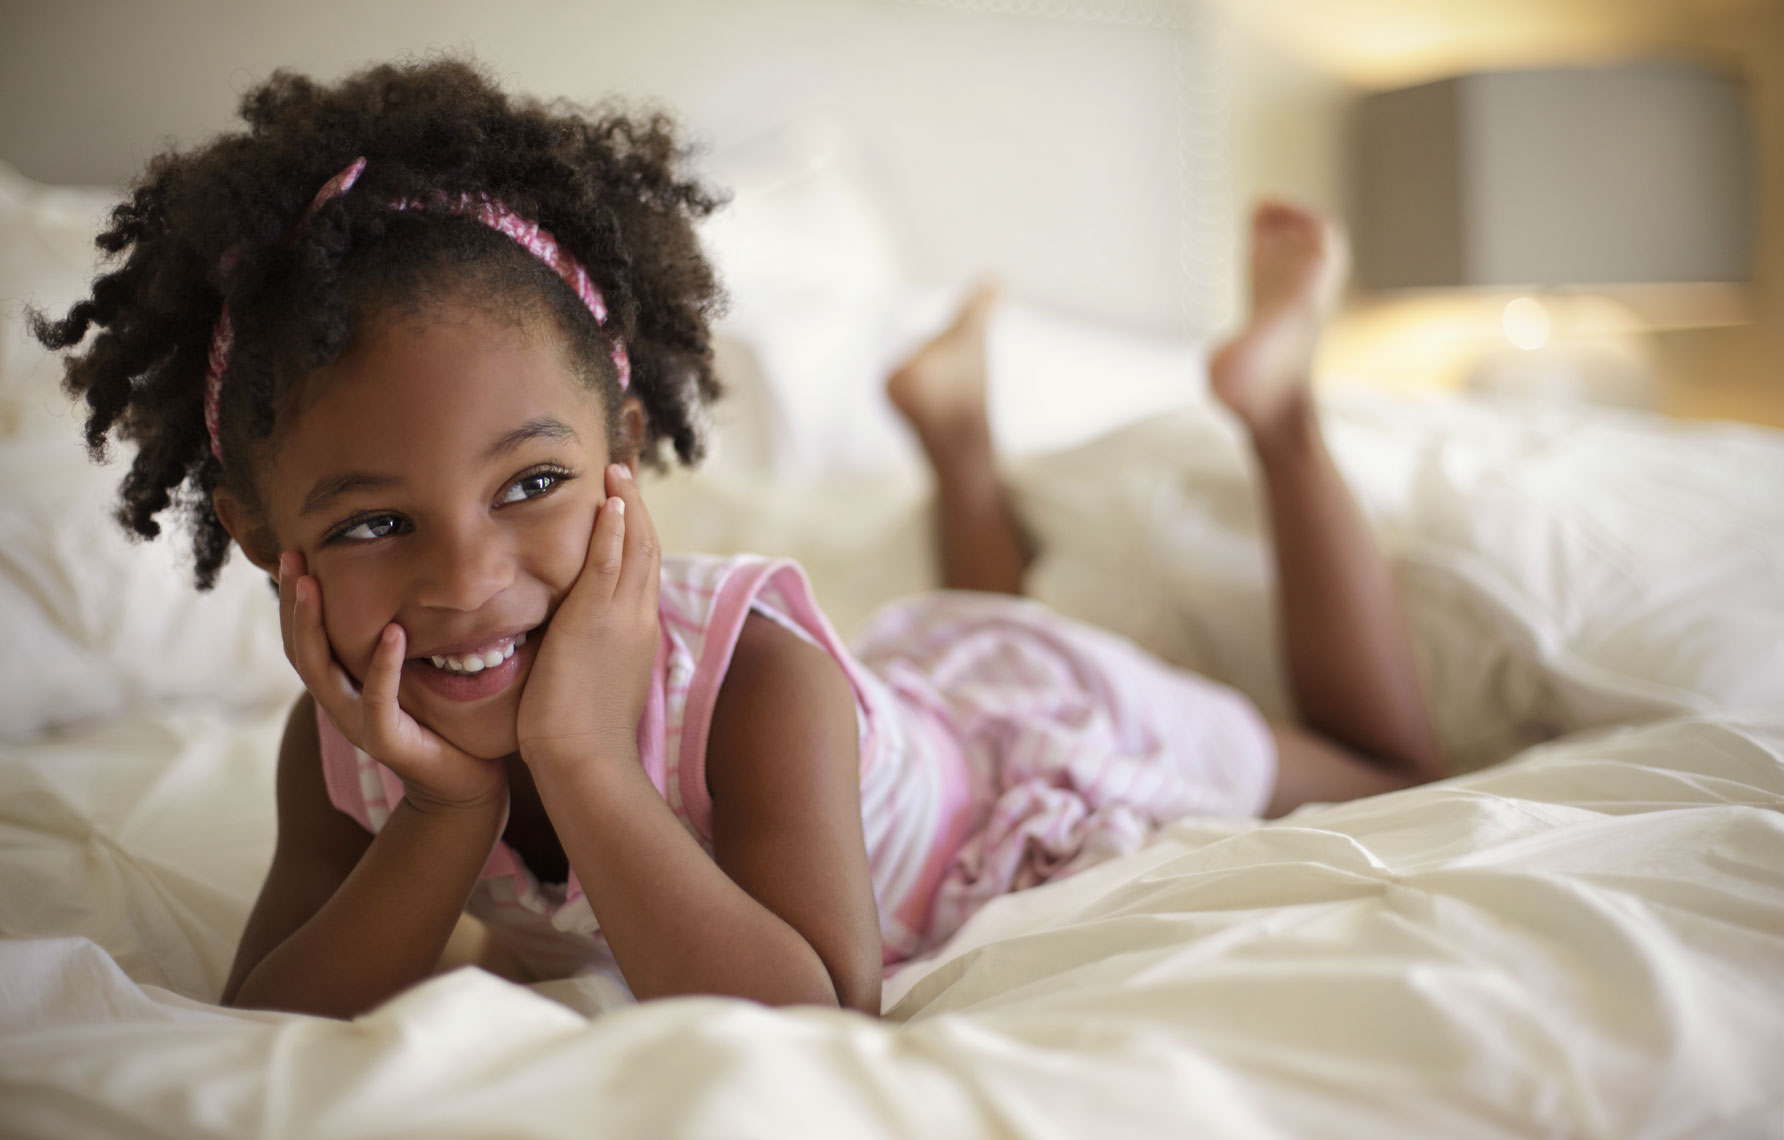 Environmental portrait of African American girl in bedroom